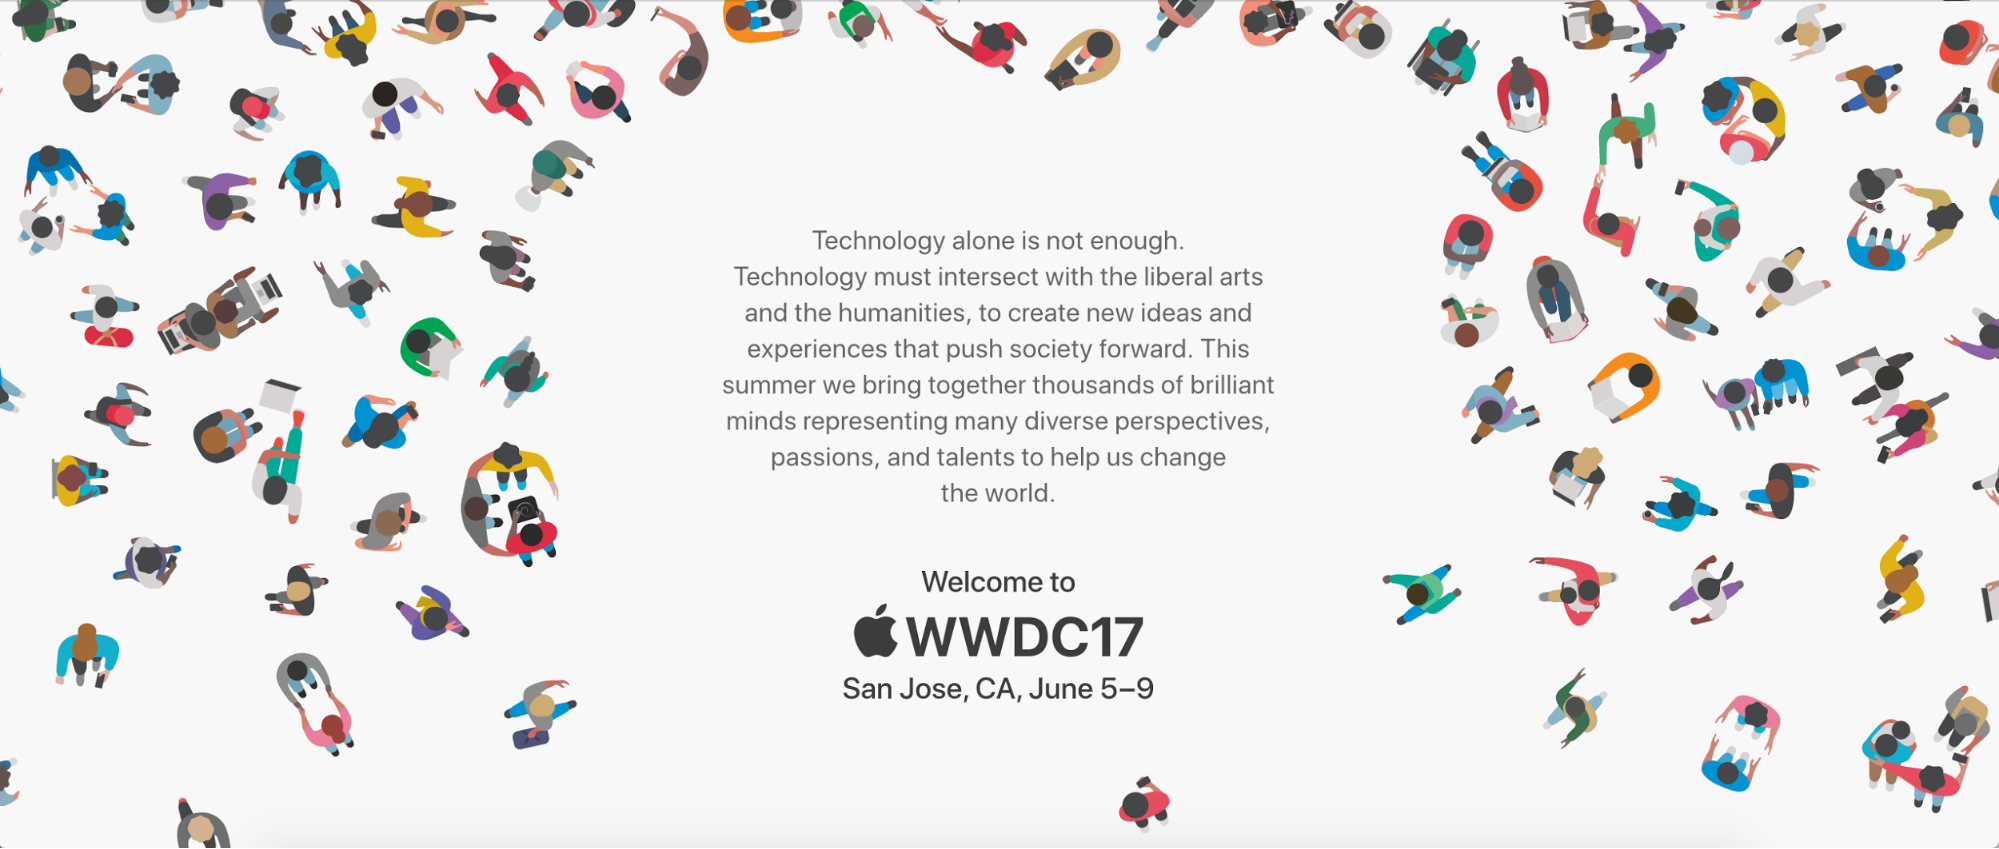 Welcome to WWDC17